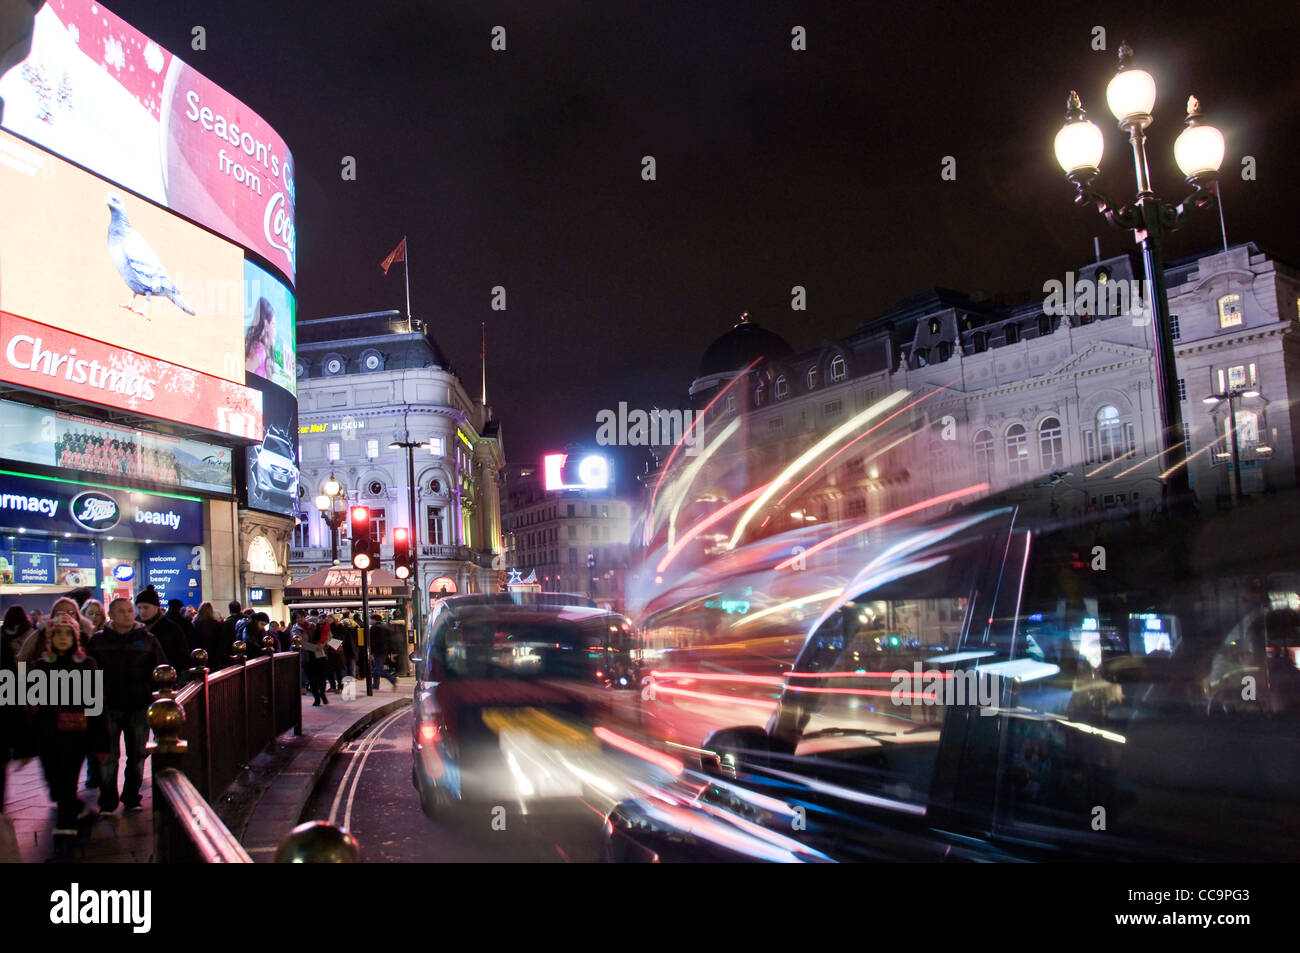 Picadilly circus at night - London (UK) - Stock Image